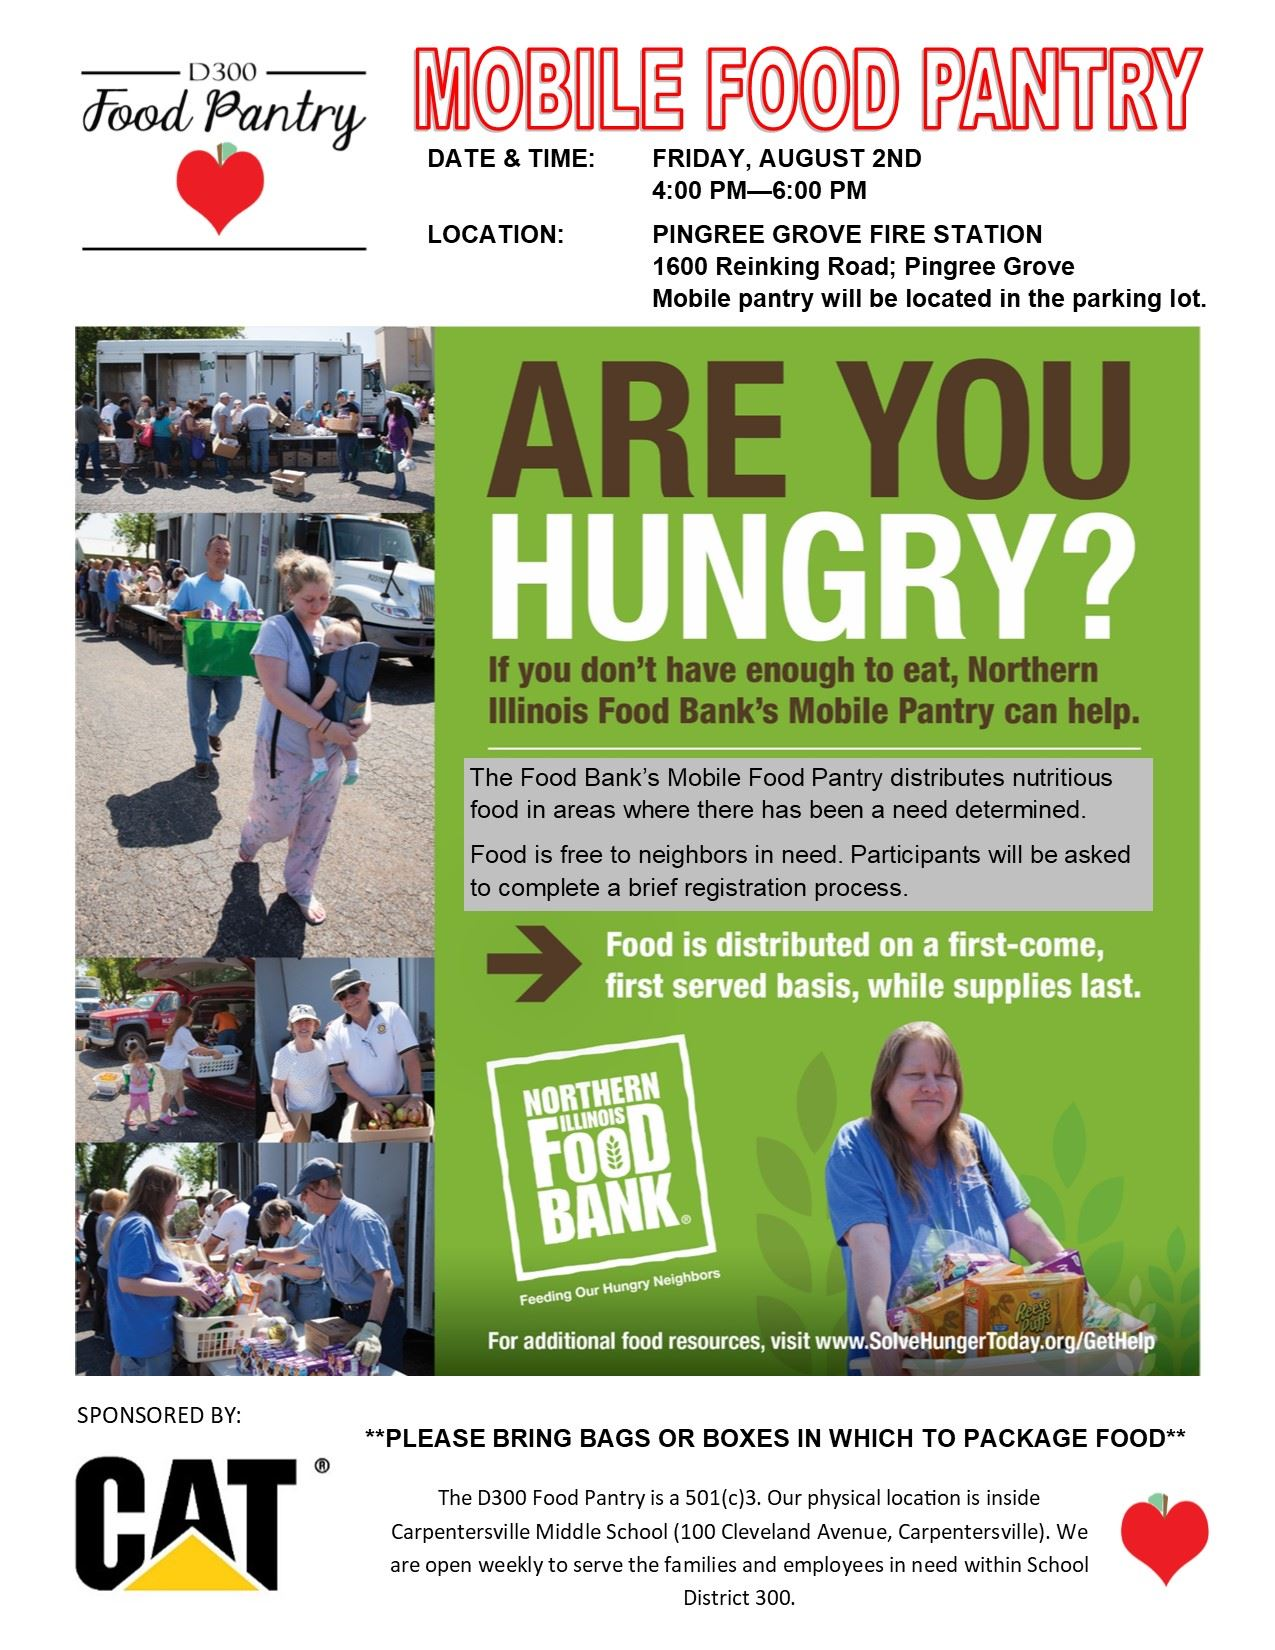 Mobile Pantry Flyer - Pingree Grove - 08.02.19